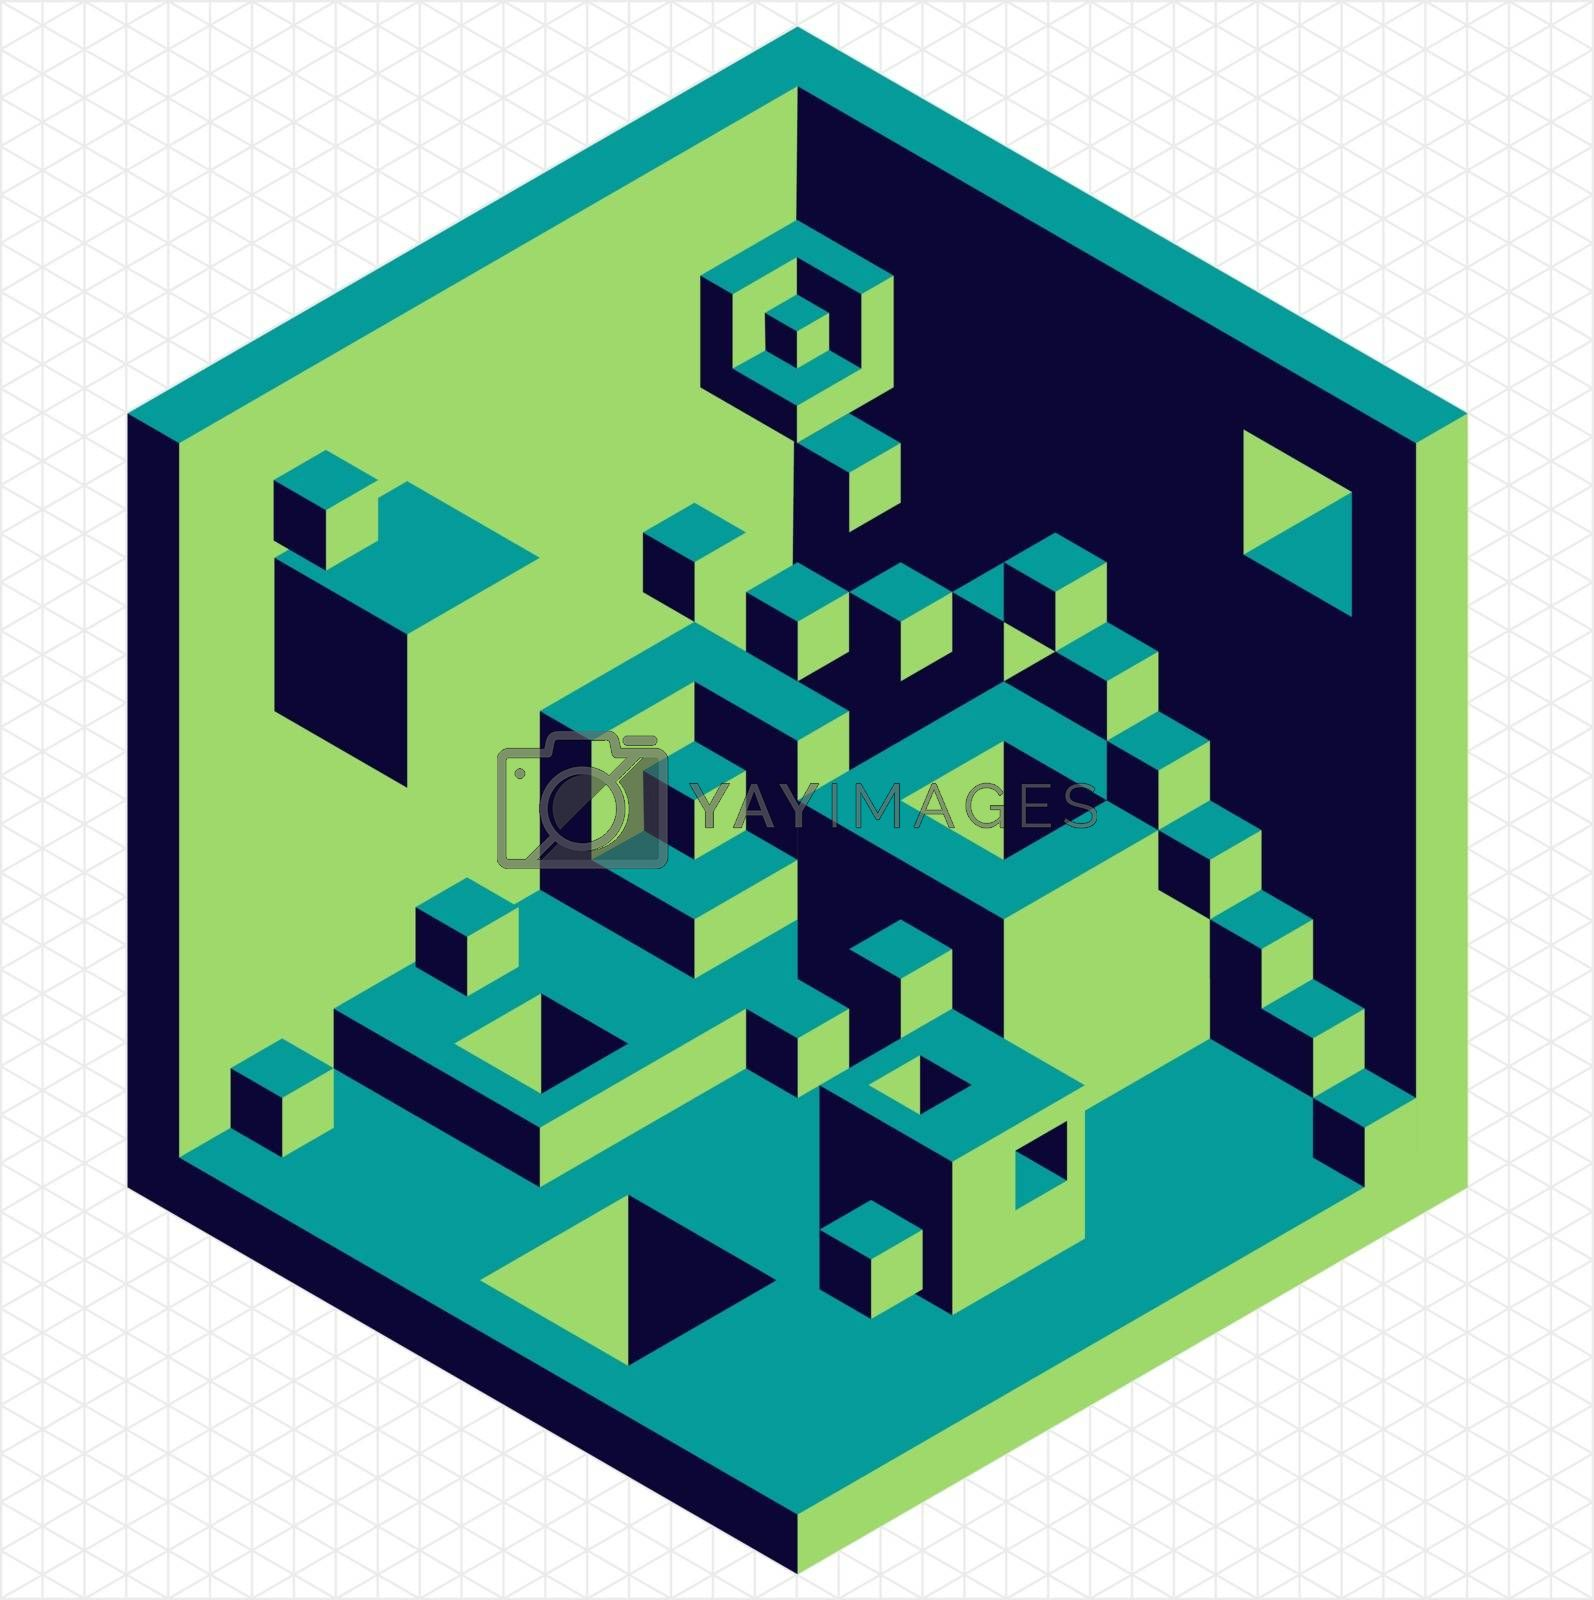 Royalty free image of Isometric 3d cubes shape illustration by cienpies